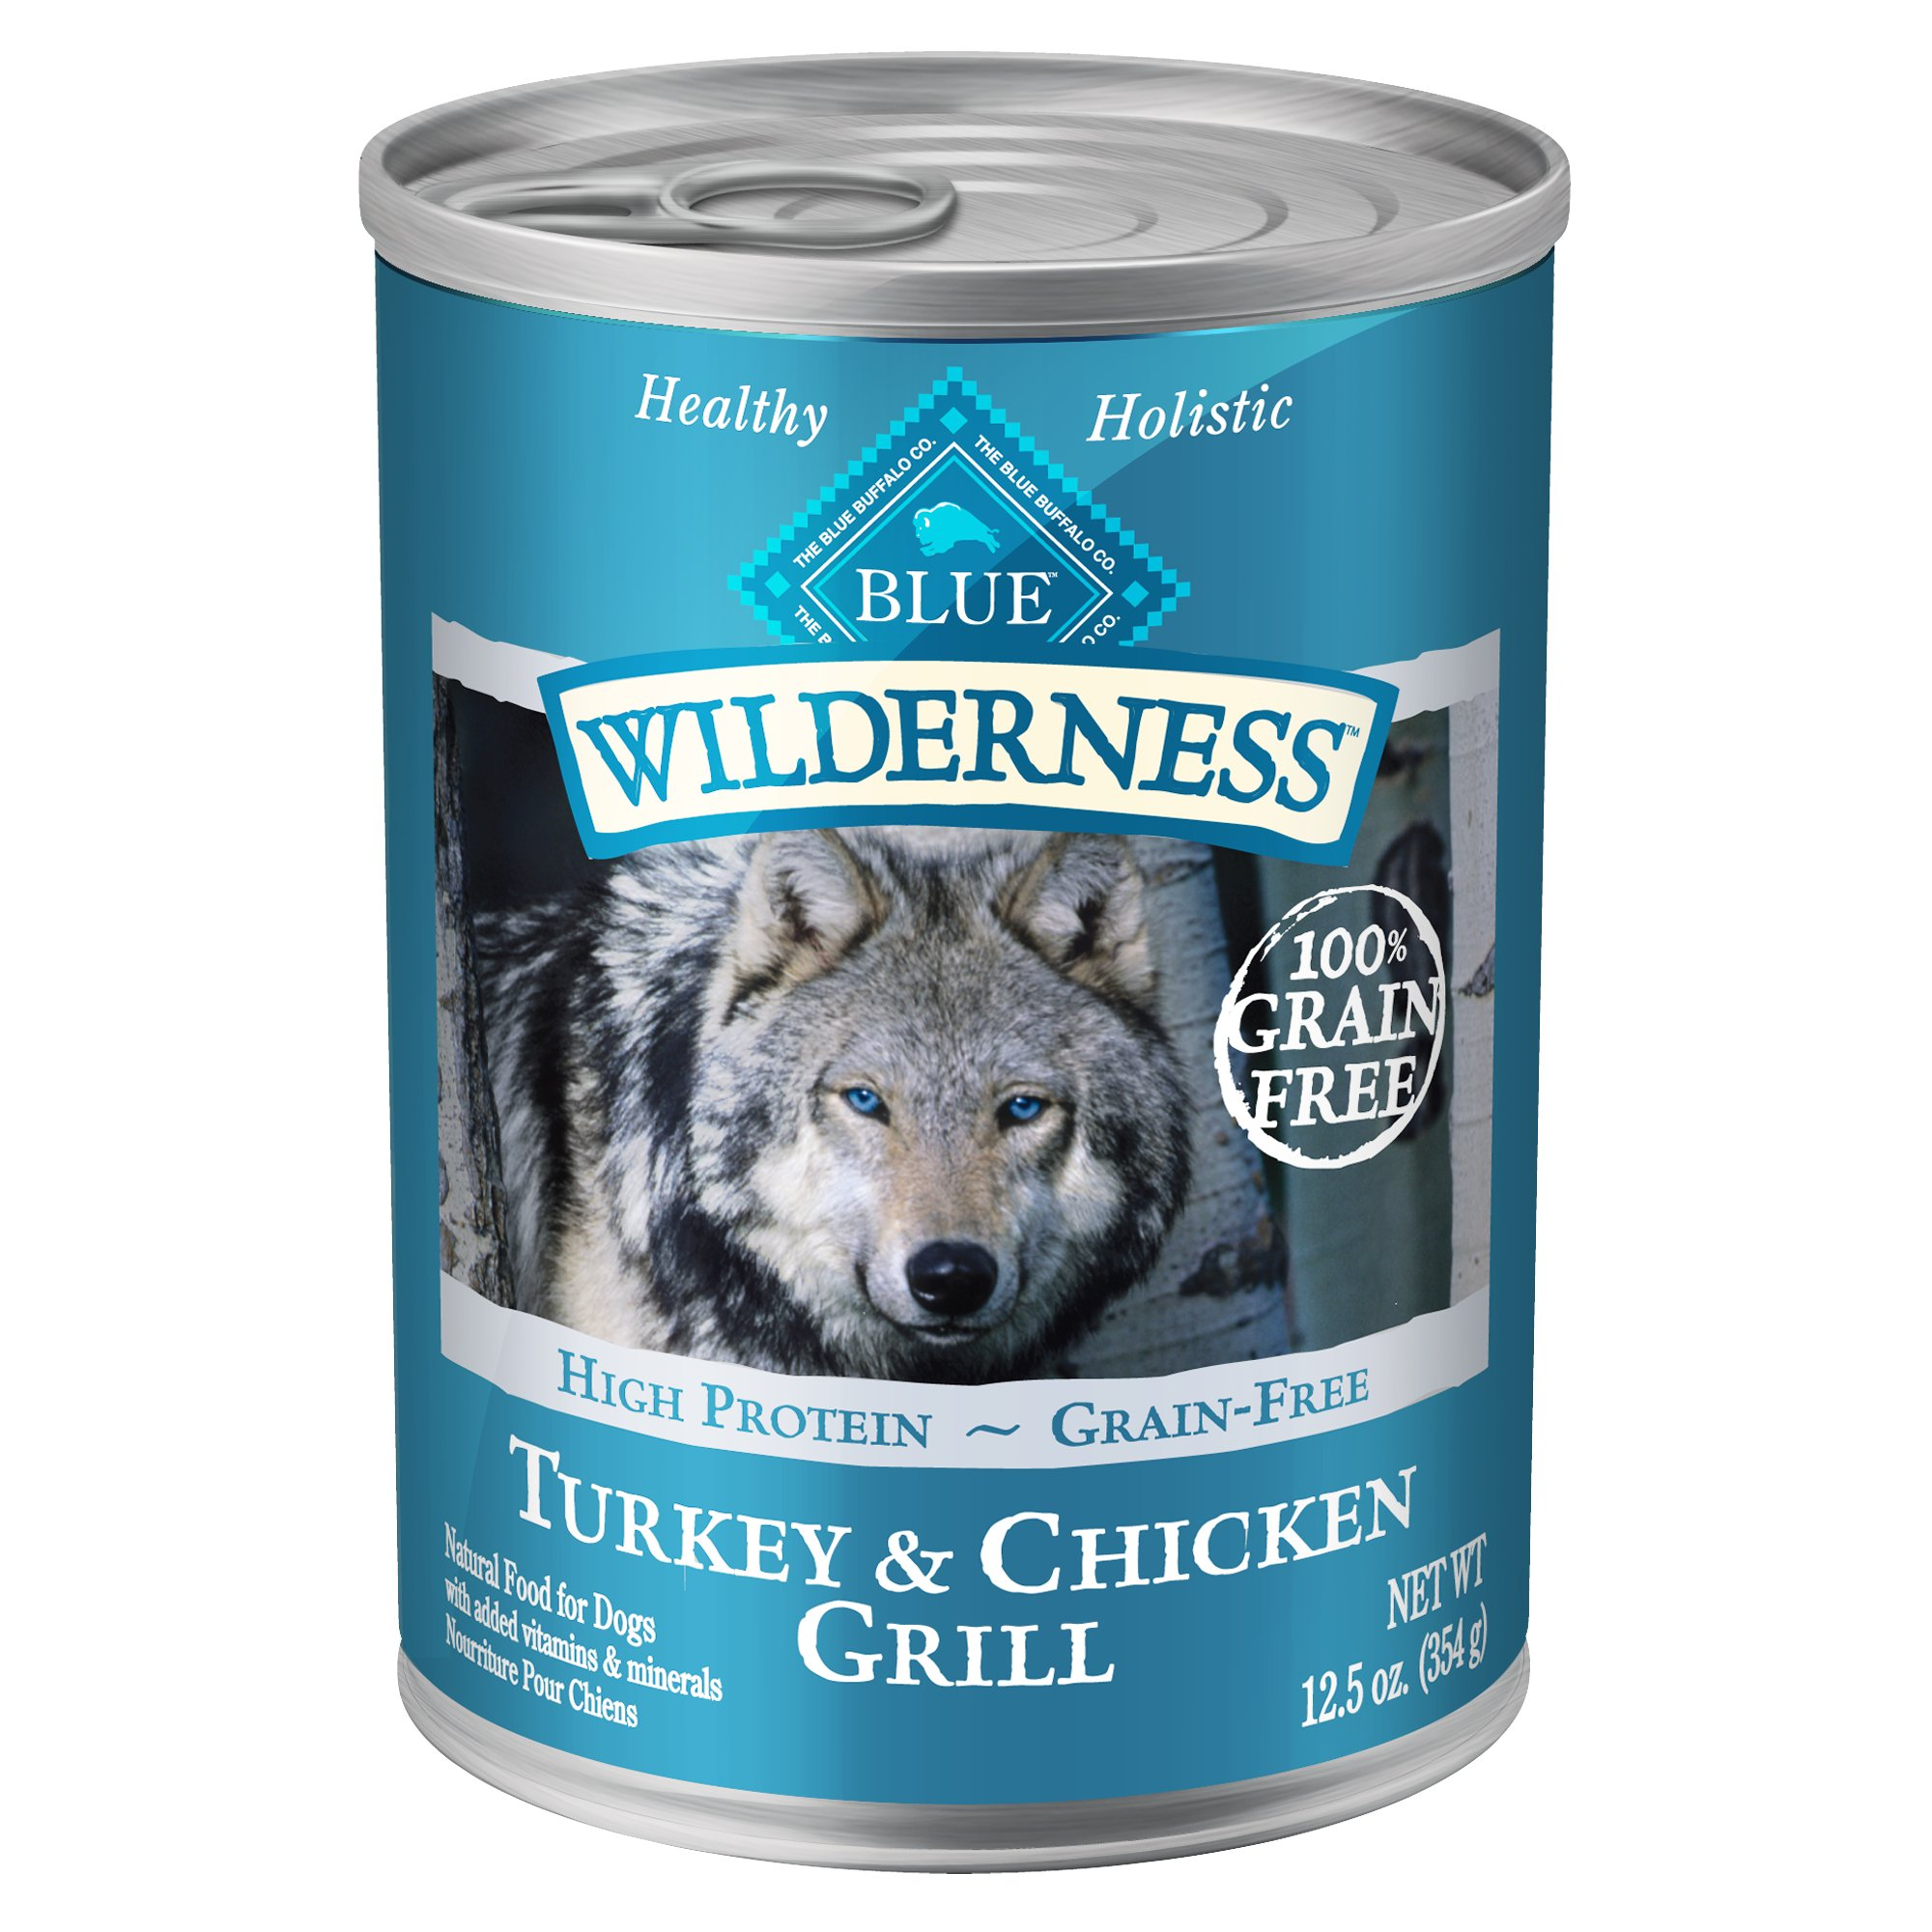 Petco Blue Buffalo Wilderness Dog Food